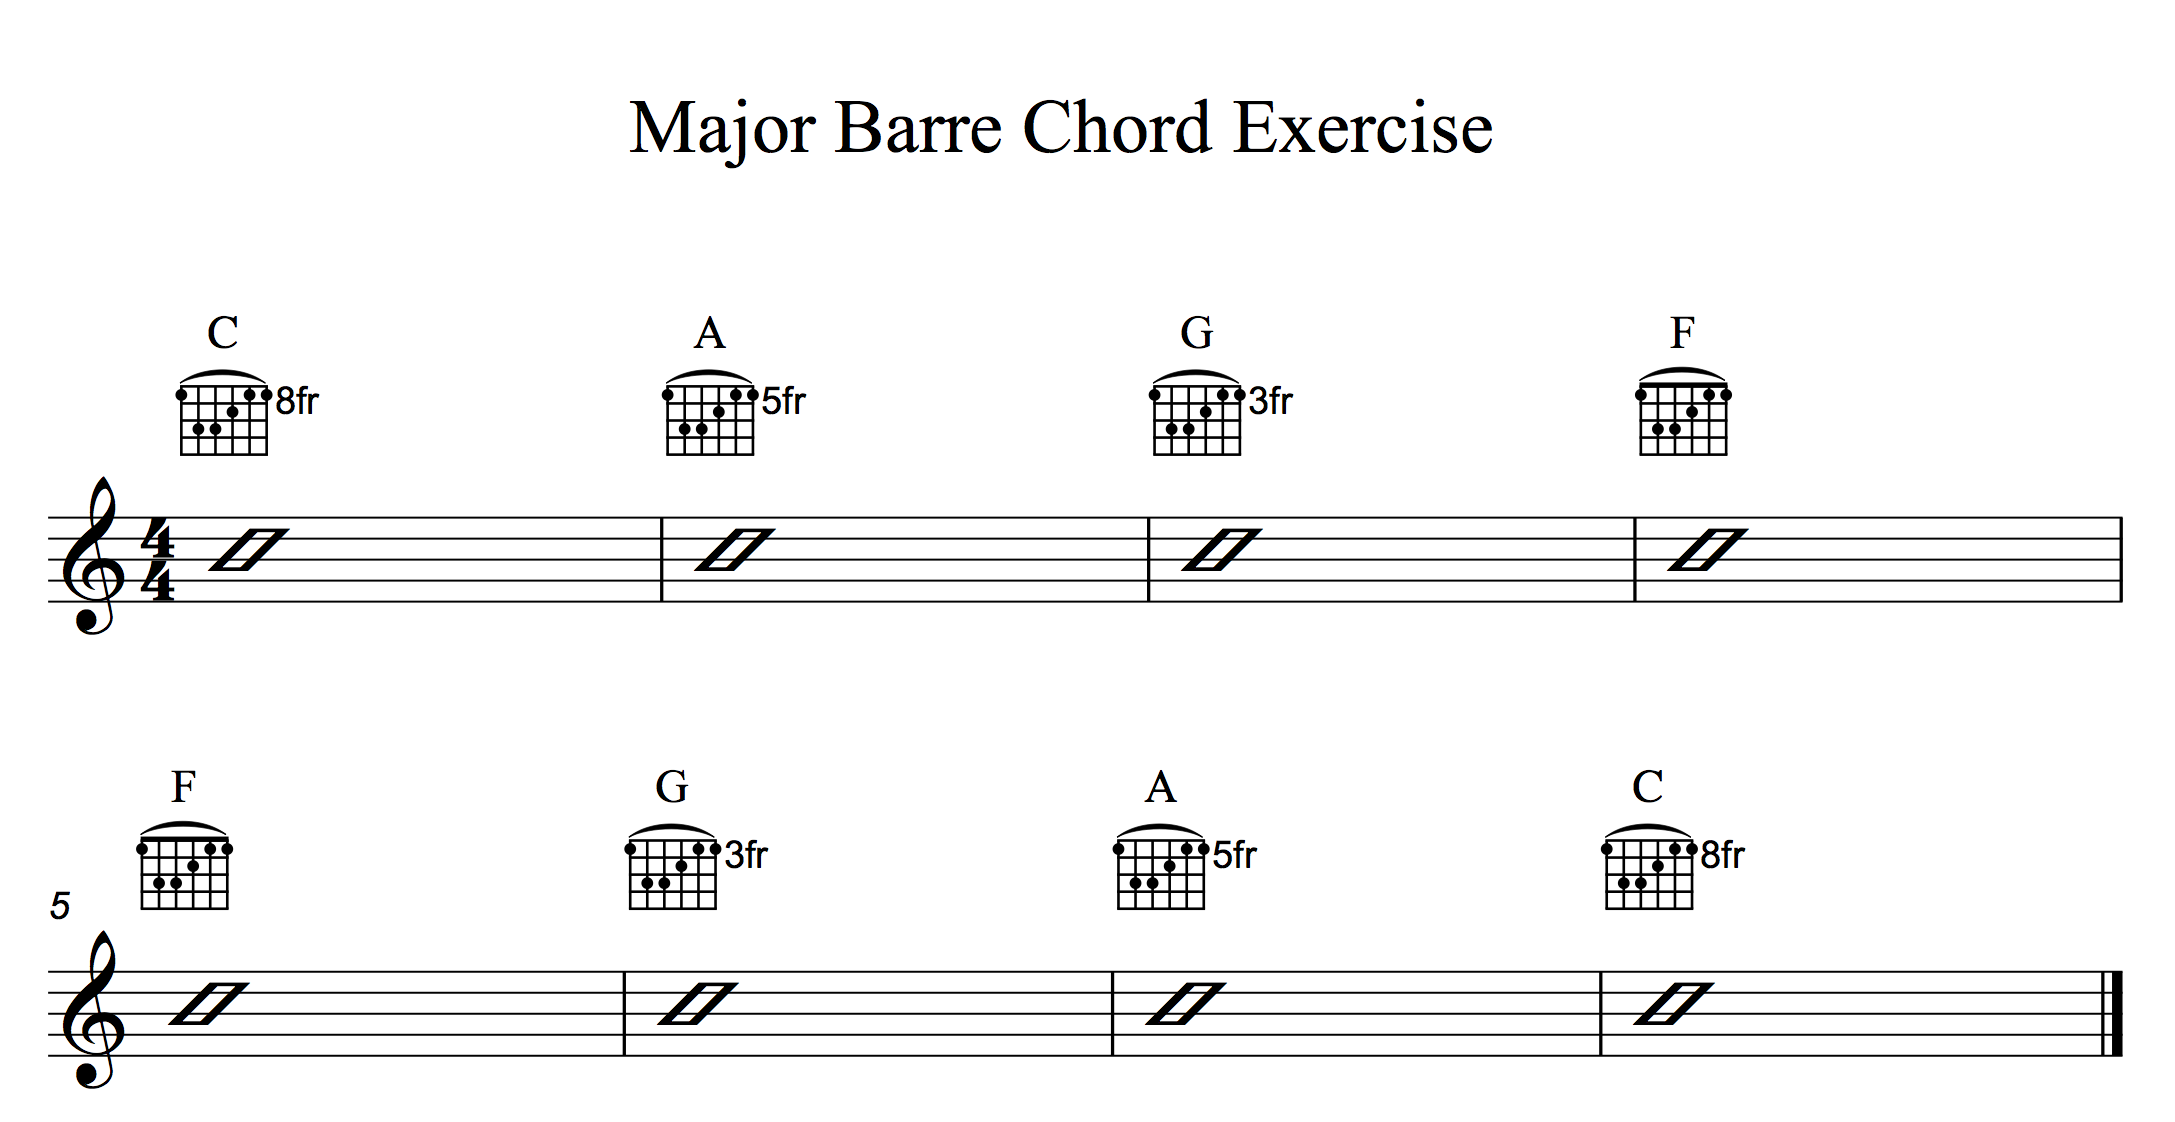 Major Barre Chord Exercise